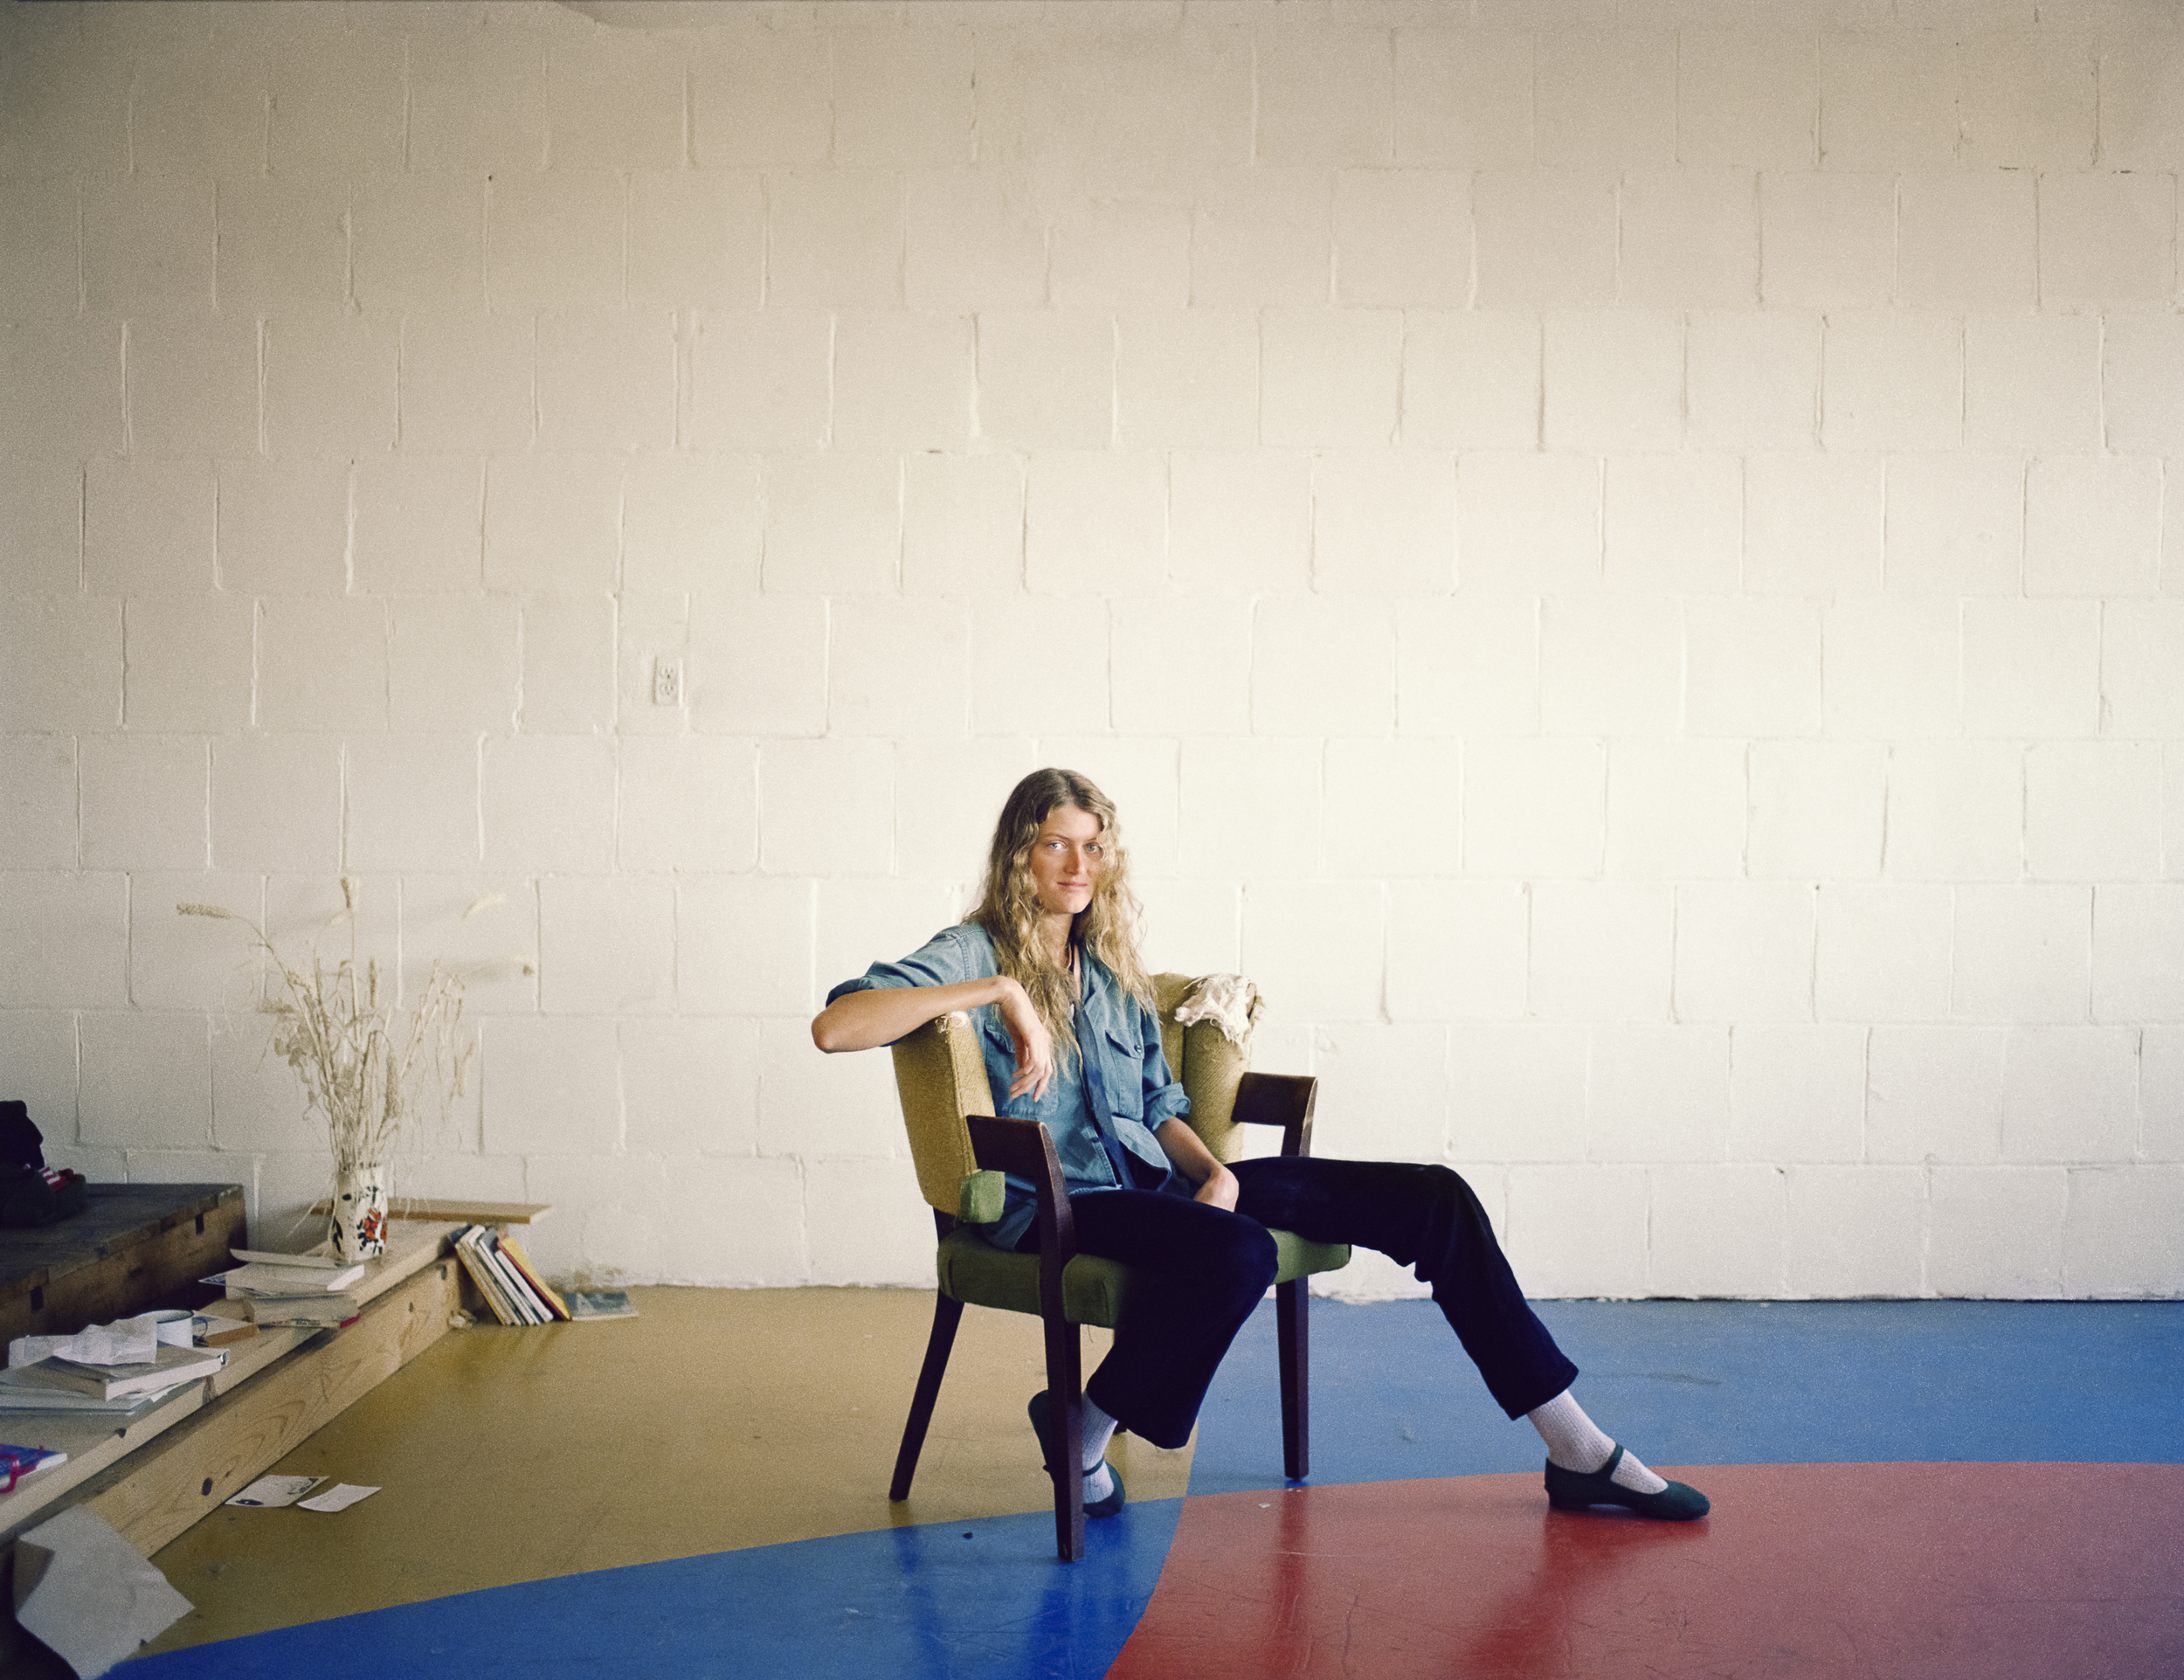 Chamys Crane in her studio, Project One, 10th at Howard Street, 1980 Archival Pigment Print, 2016 16 x 20 inches, edition of 5 20 x 24 inches, edition of 2 30 x 40 inches, edition of 2